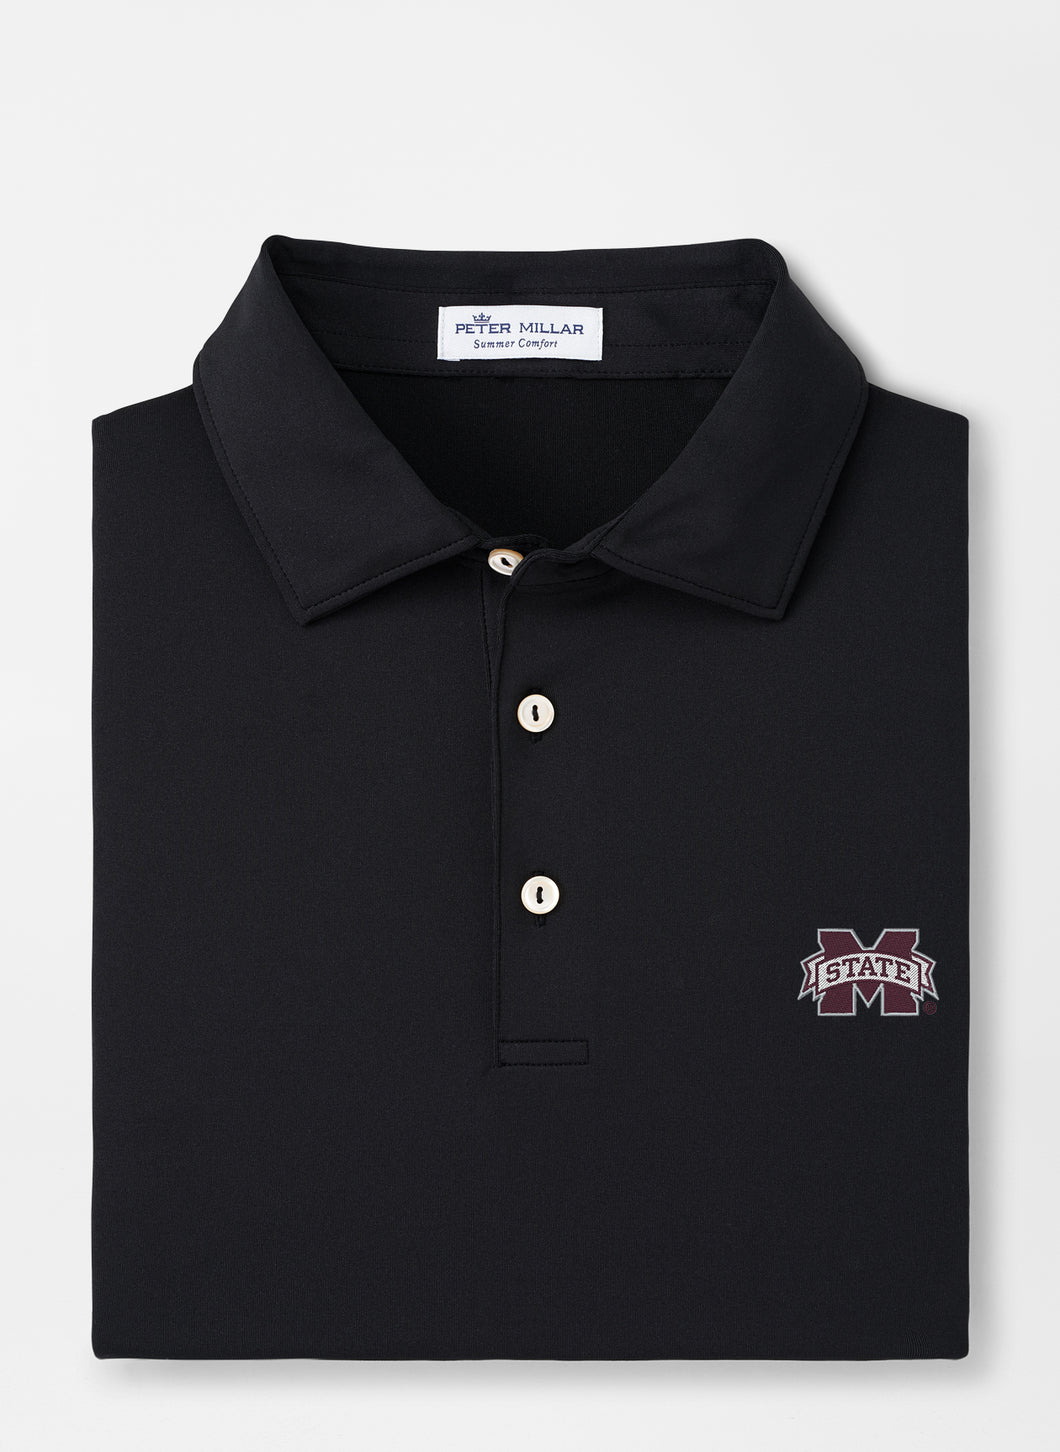 Peter Millar MSU Mississippi State Solid Performance Polo: Black